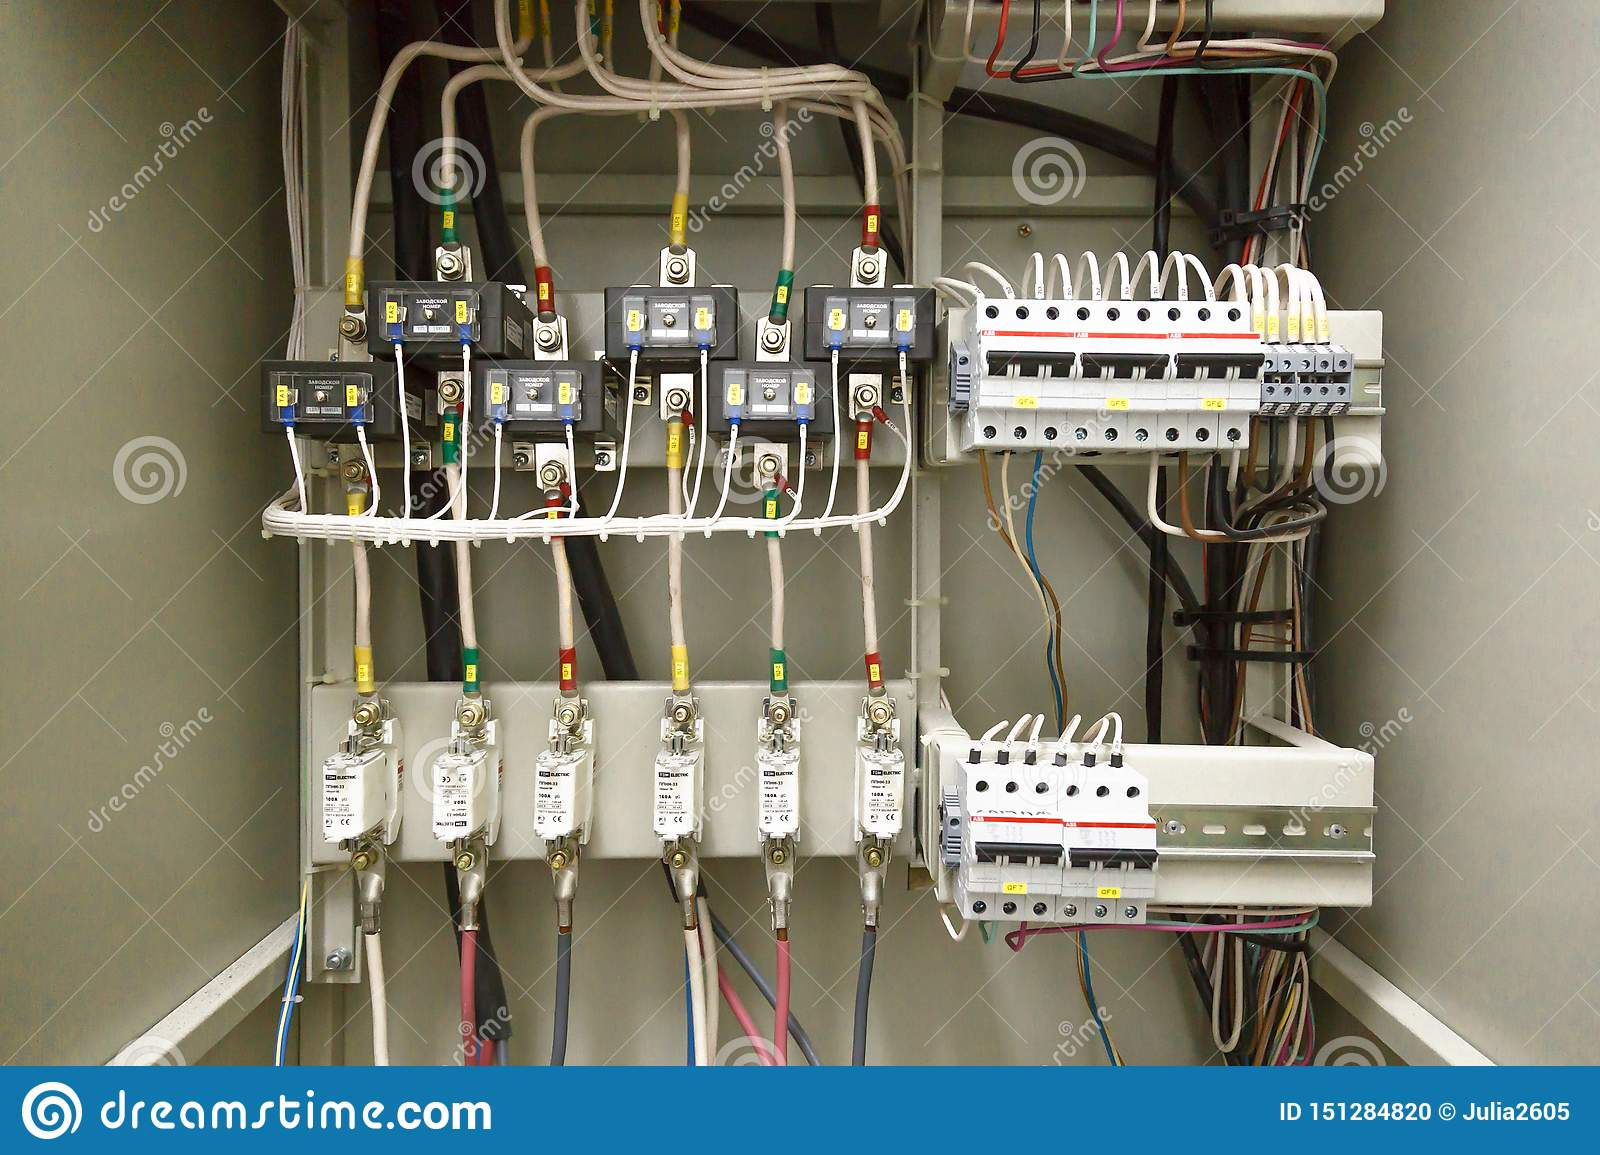 Electrical switchboard, wire, automat. electrical shield